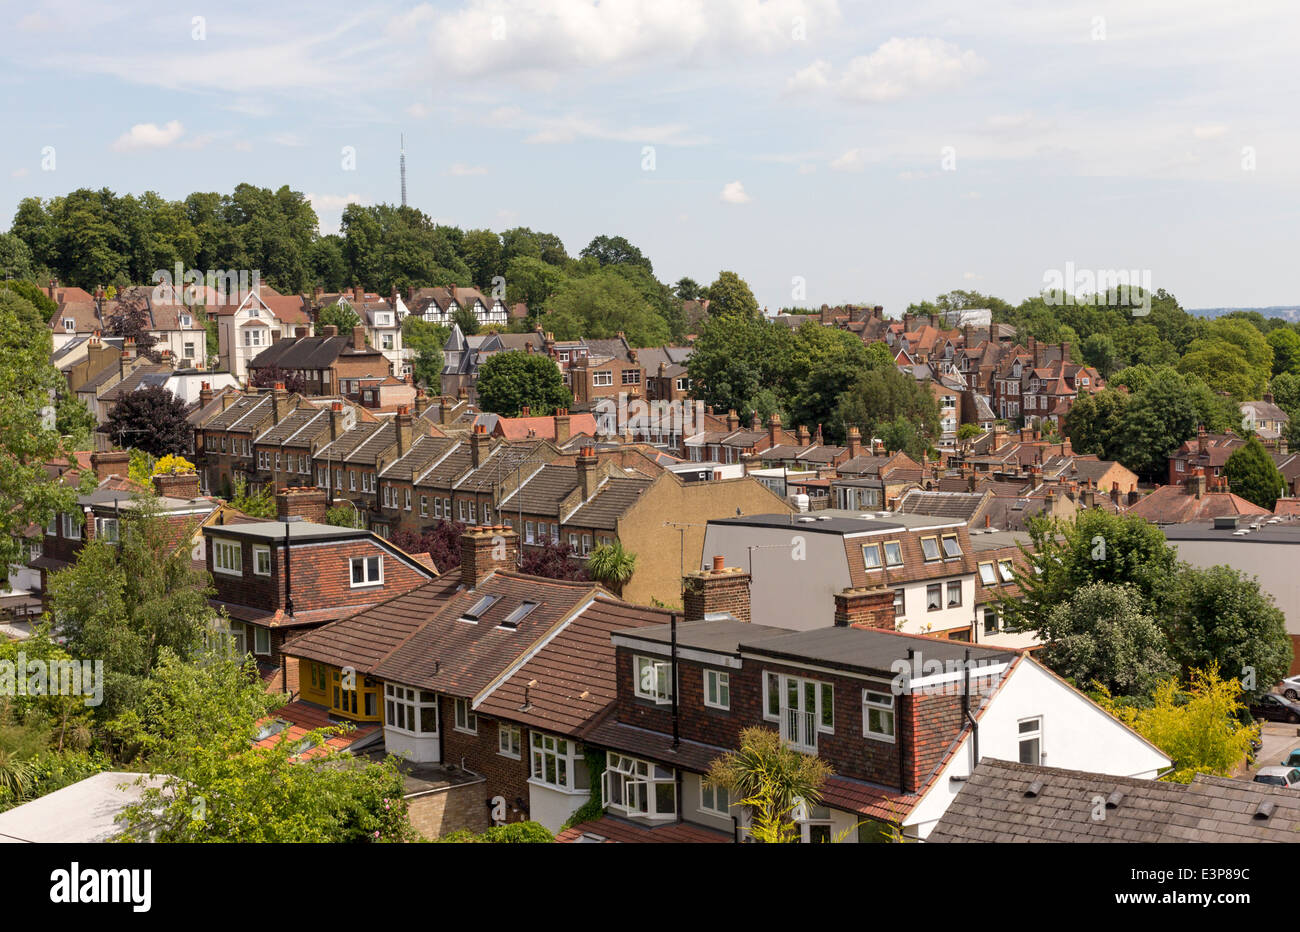 Muswell Hill - Haringey - London - Stock Image